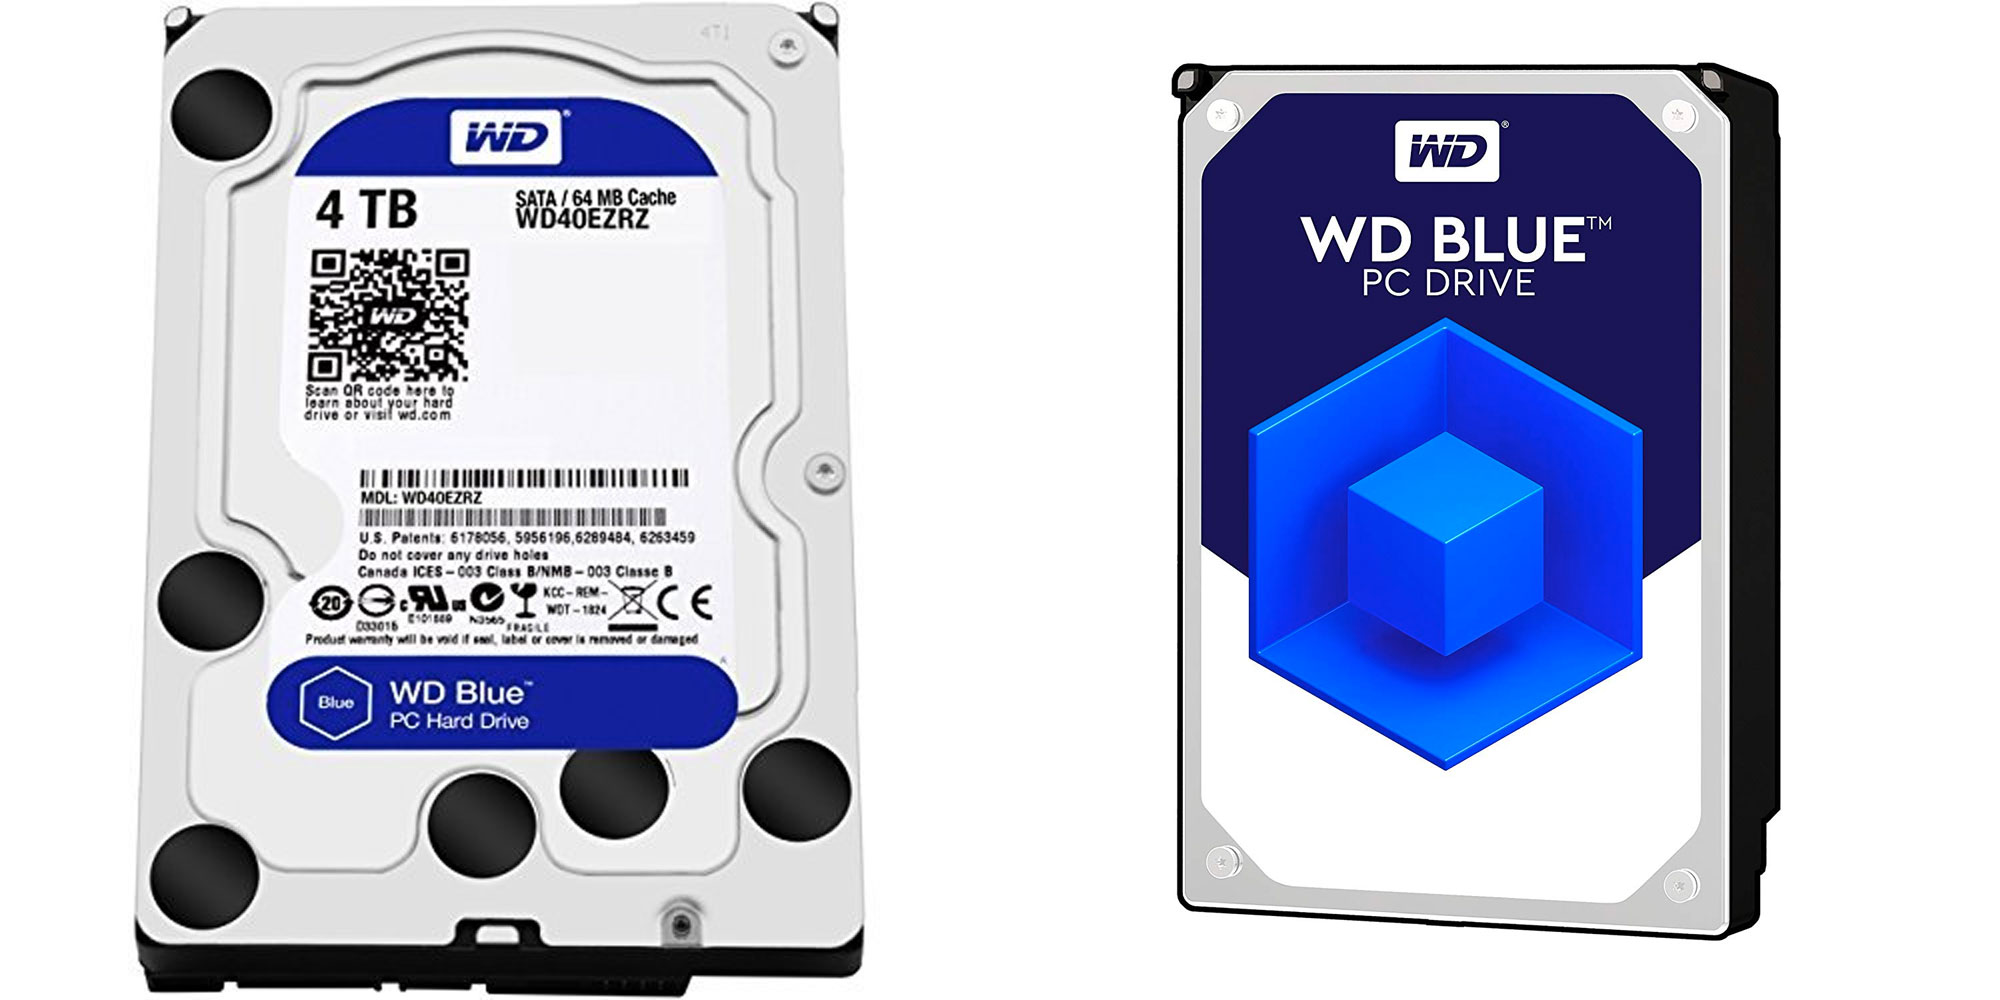 WD's 4TB Blue HDD is perfect for mass storage of movies